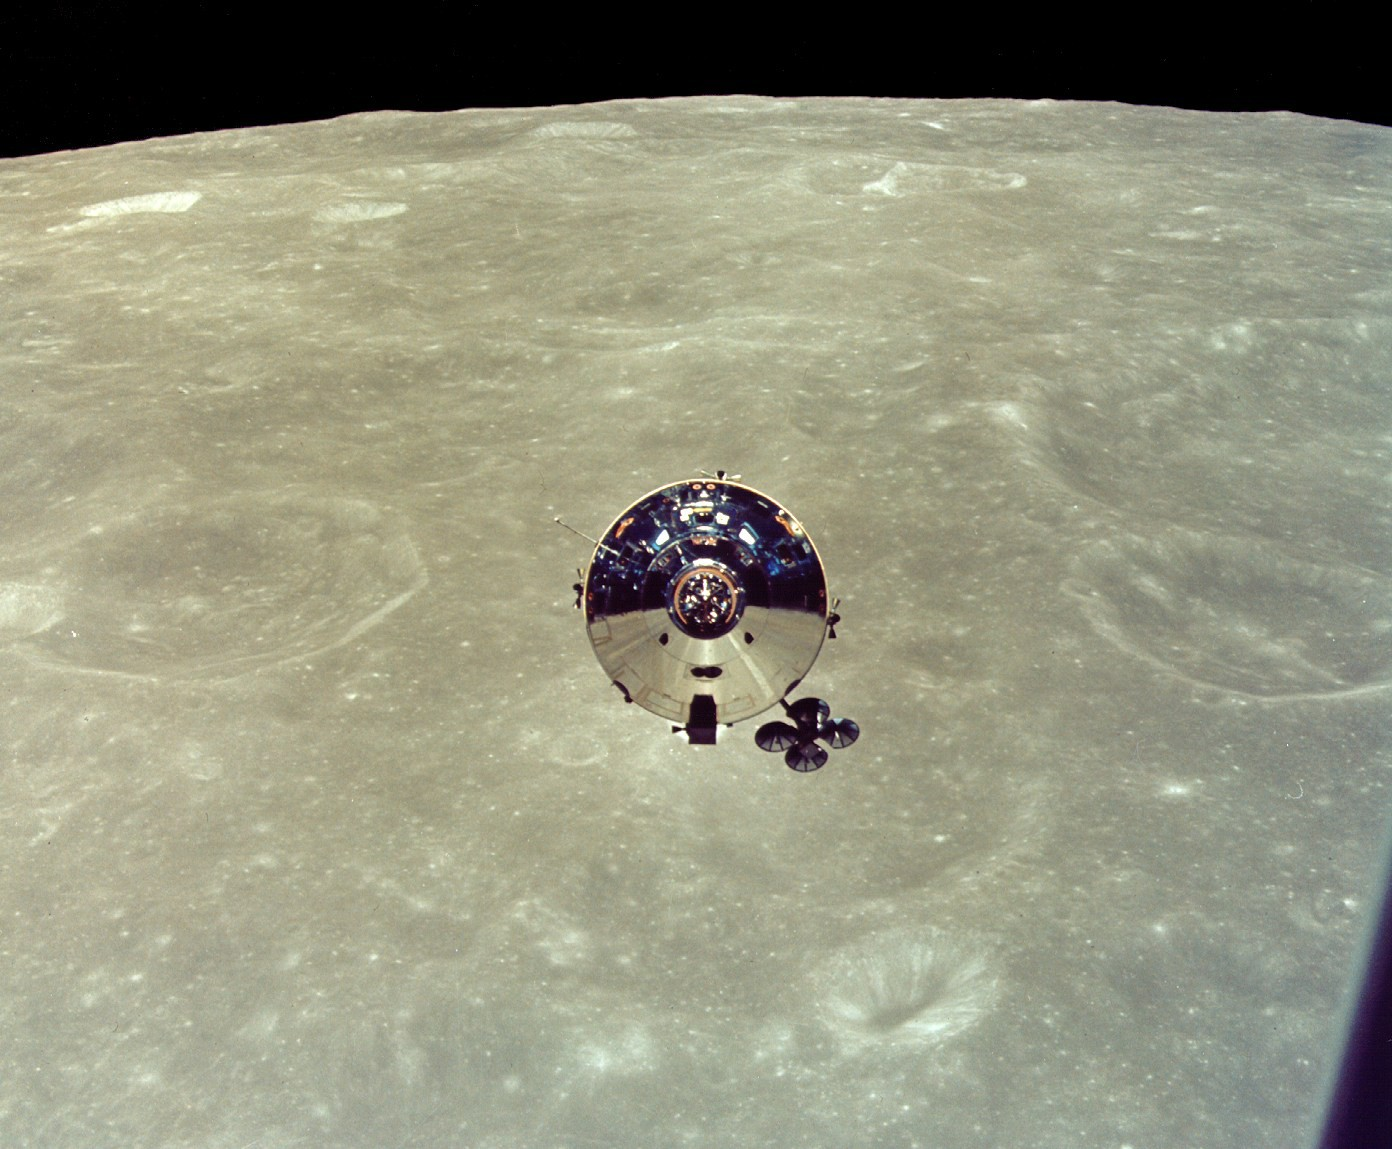 'Charlie Brown' just after undocking for Apollo 10's landmark approach to the Moon. Credit: NASA